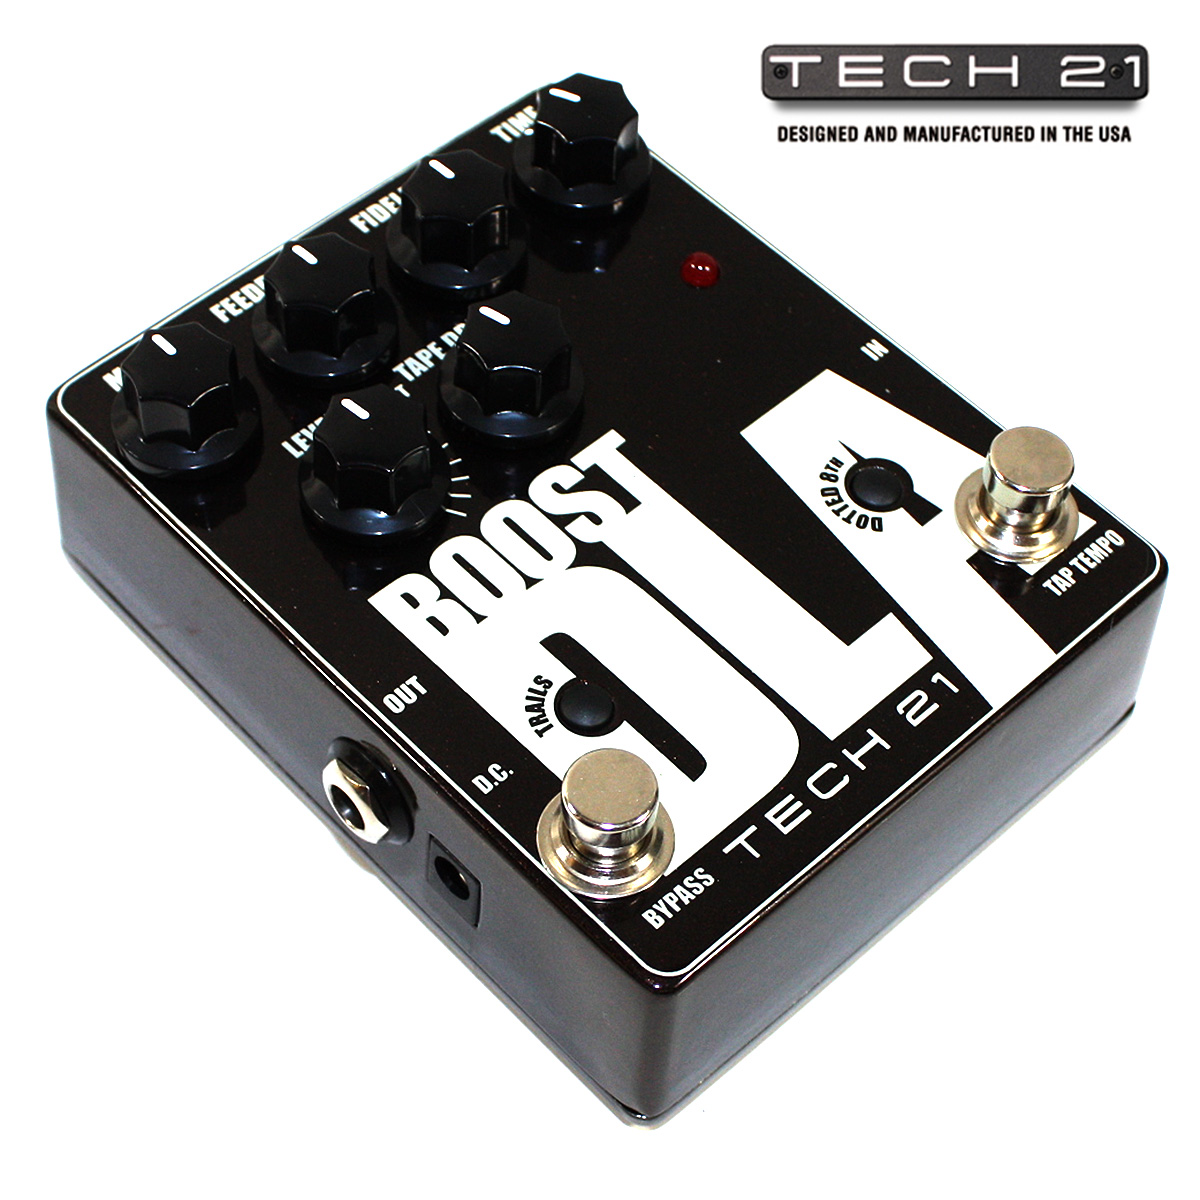 Tech21 tech 21 dlatt dla boost analog delay stompbox